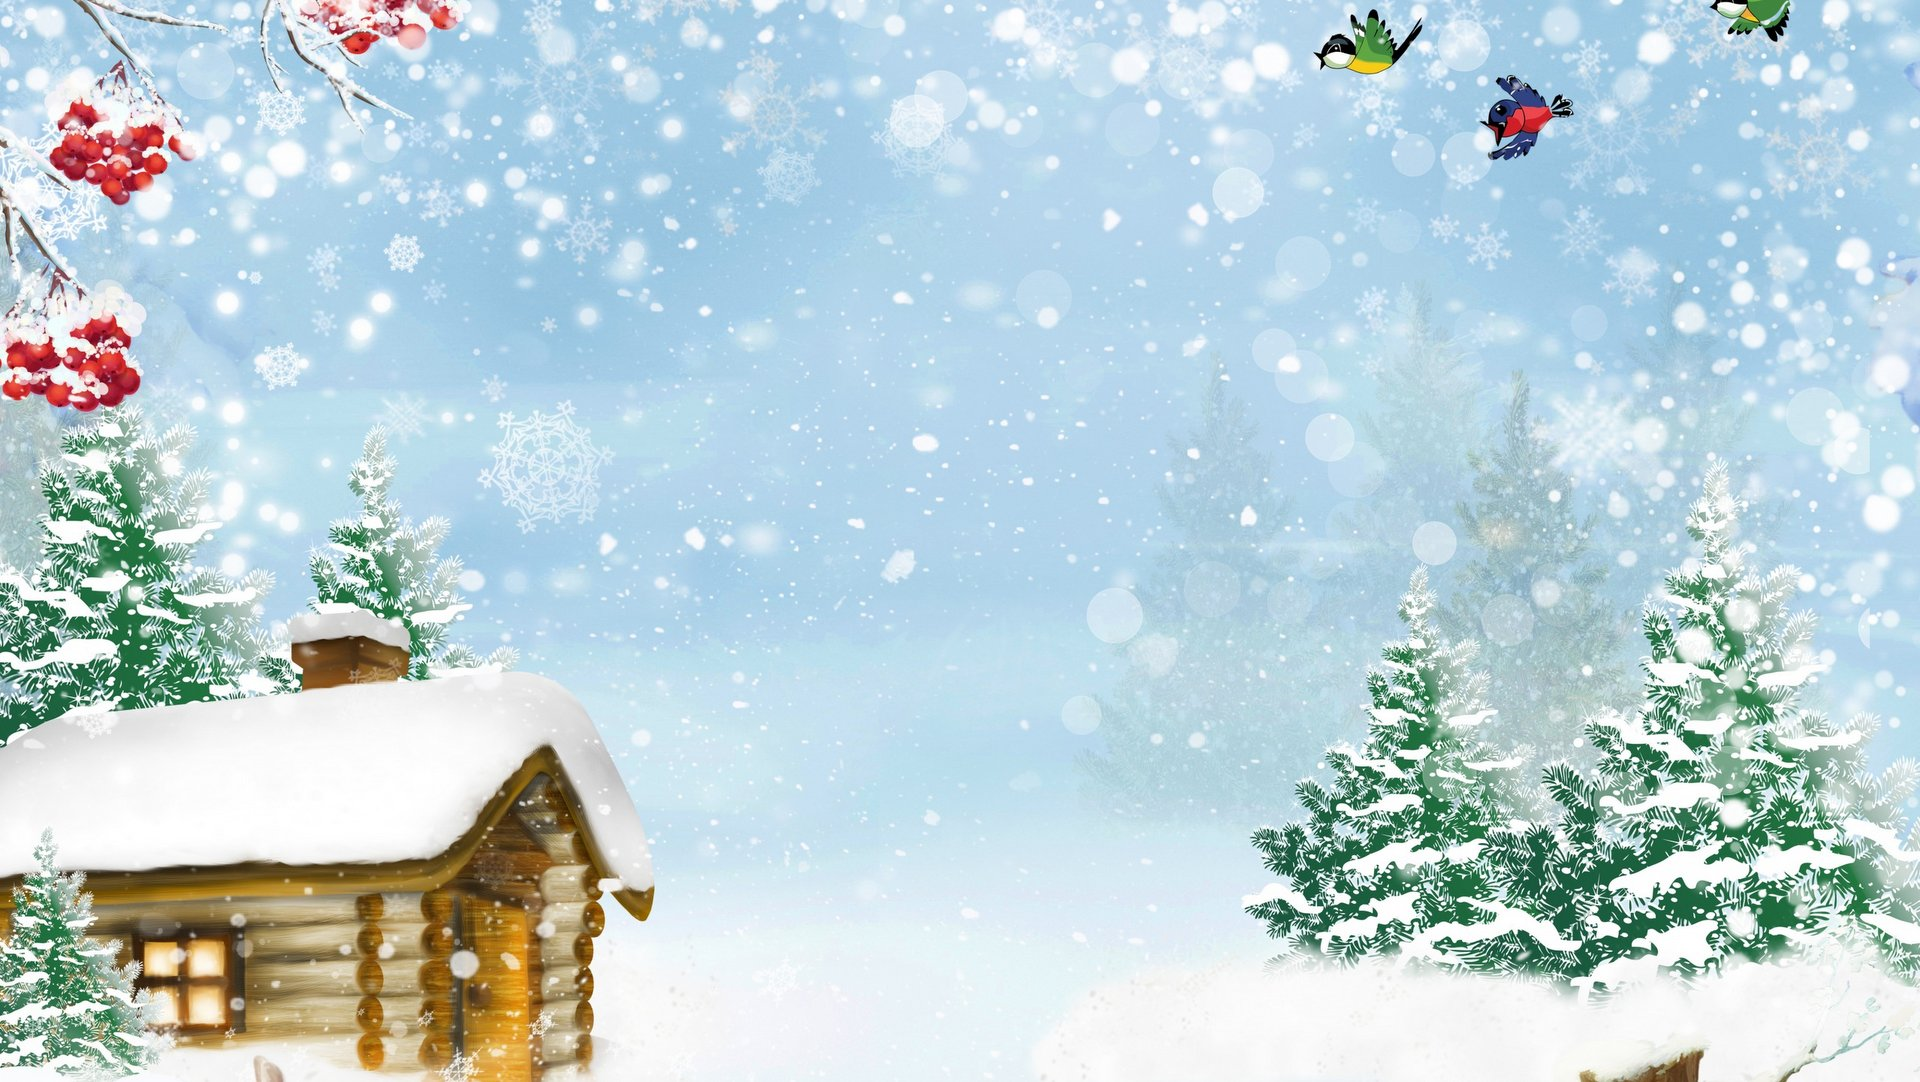 Xmas Winter House Birds Snow Background HD 1080p